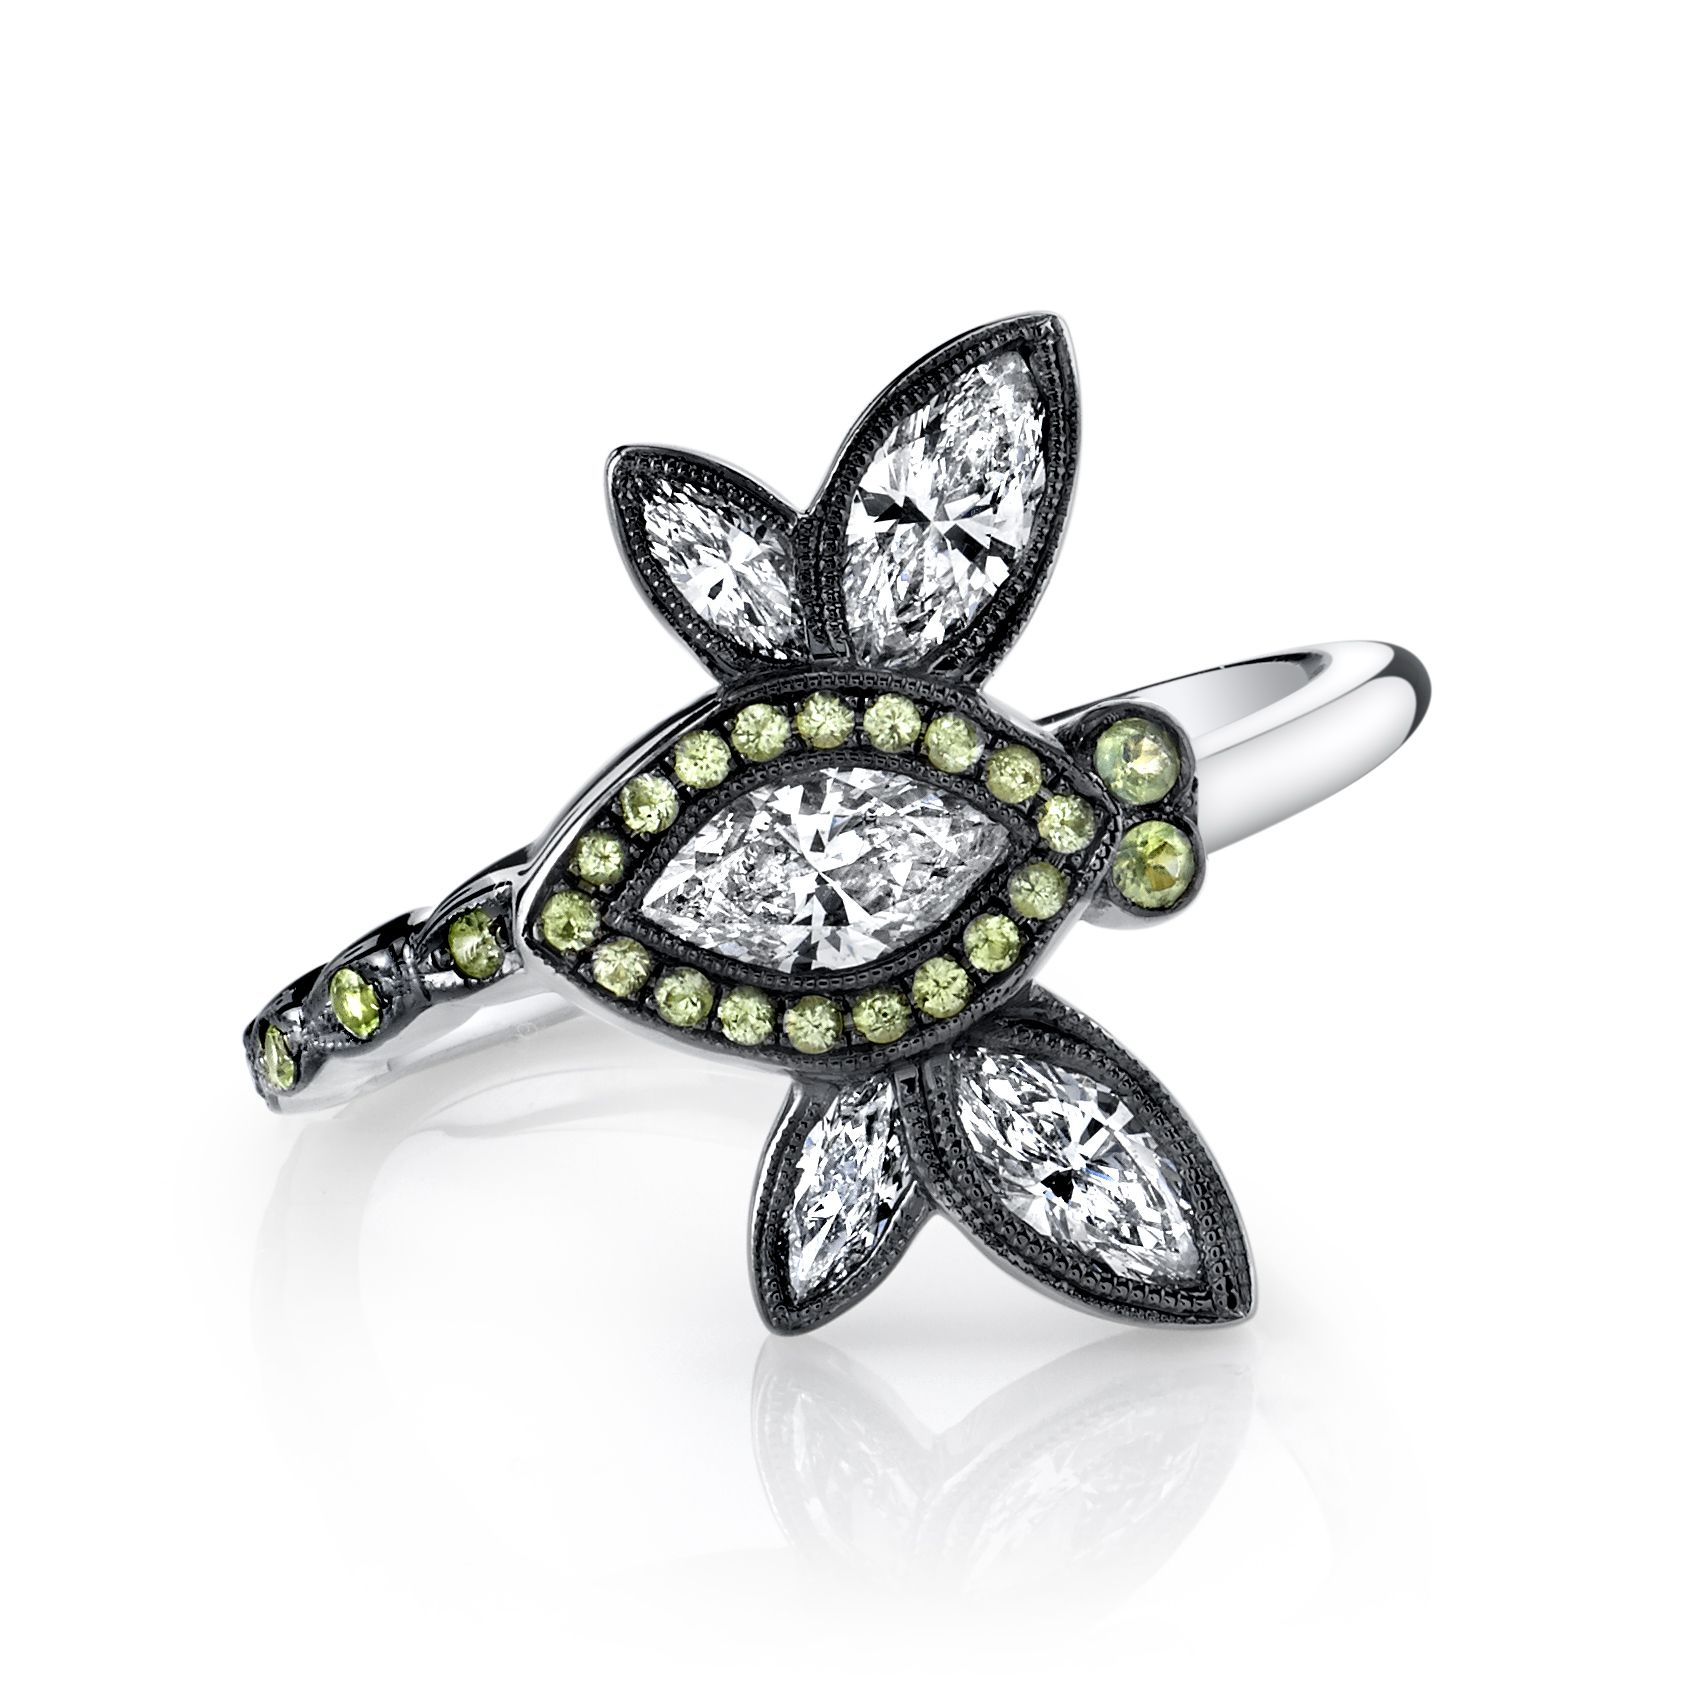 buccellati bradamante engagement jersey new dragonfly ring rings product nj